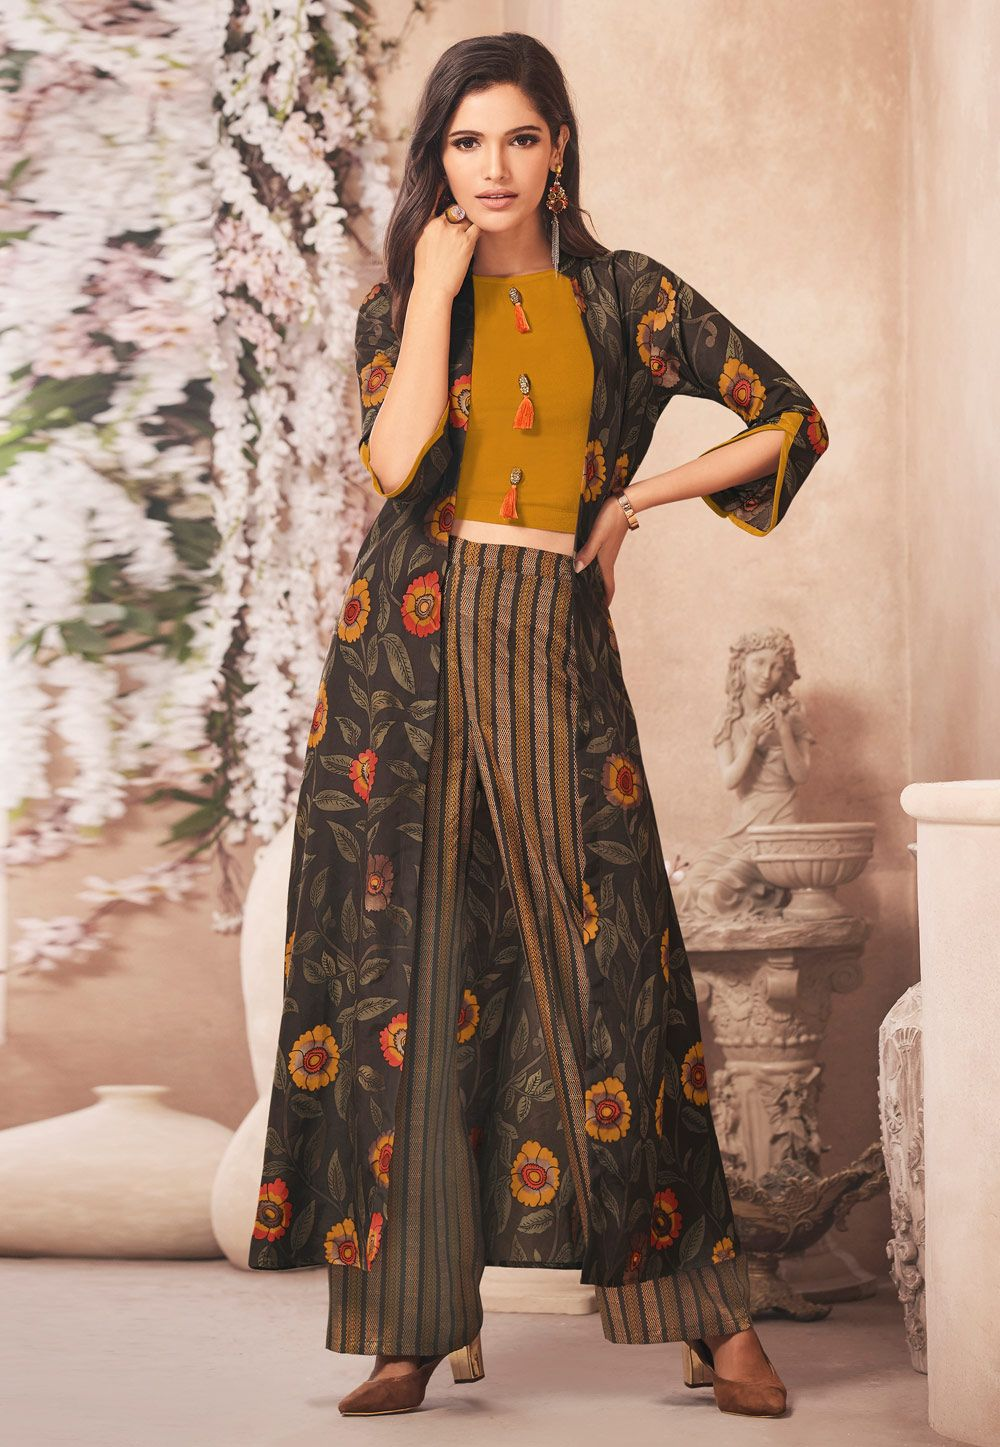 69c81b56de Buy Mustard Rayon Readymade Kameez With Palazzo and Jacket 157561 online at  lowest price from huge collection of salwar kameez at Indianclothstore.com.